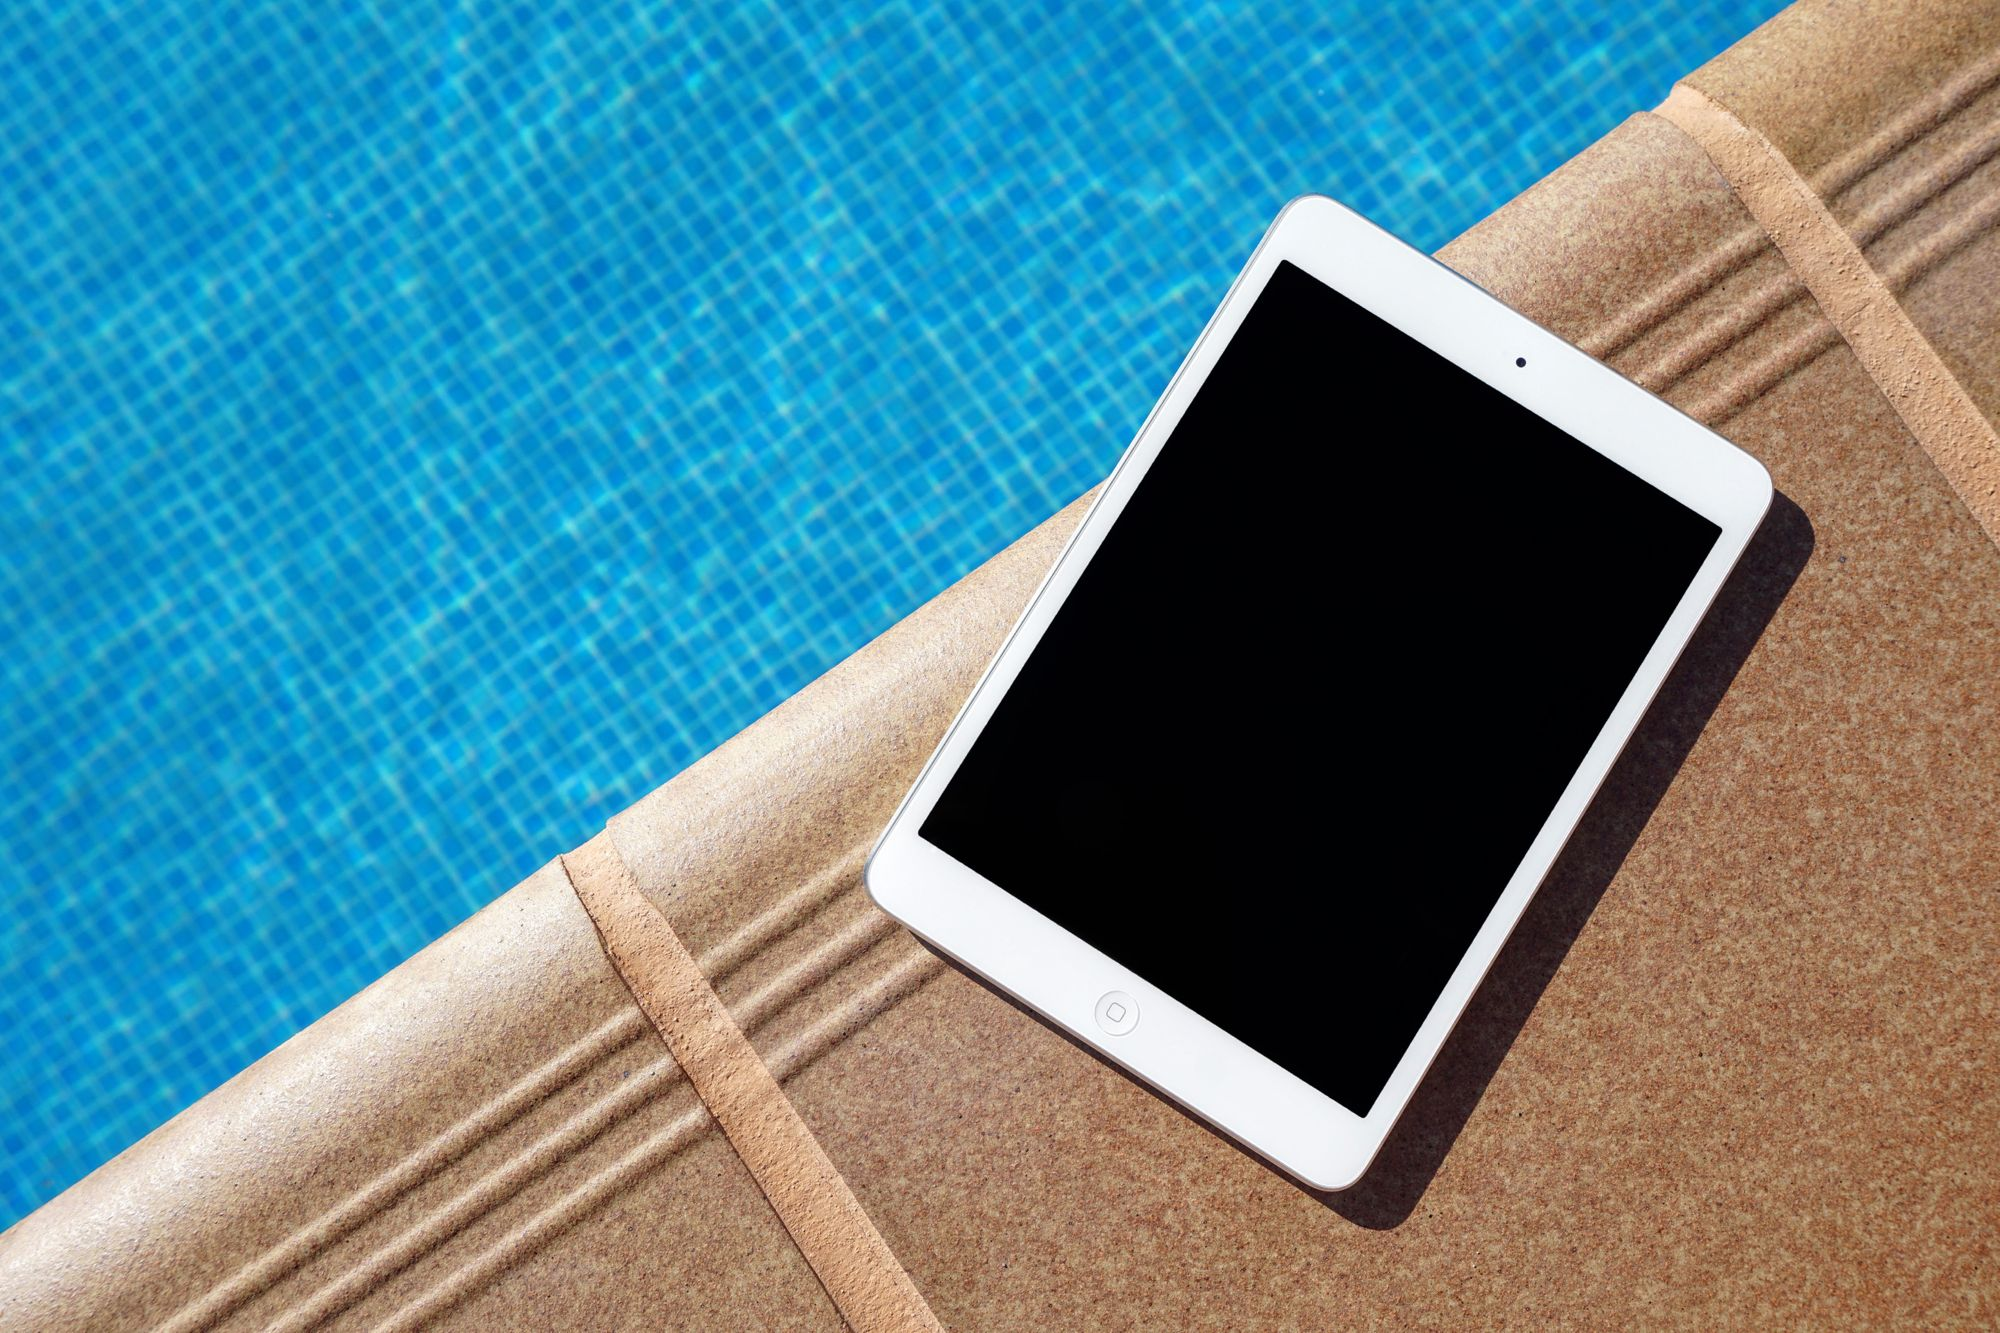 An iPad placed on the edge of a swimming pool